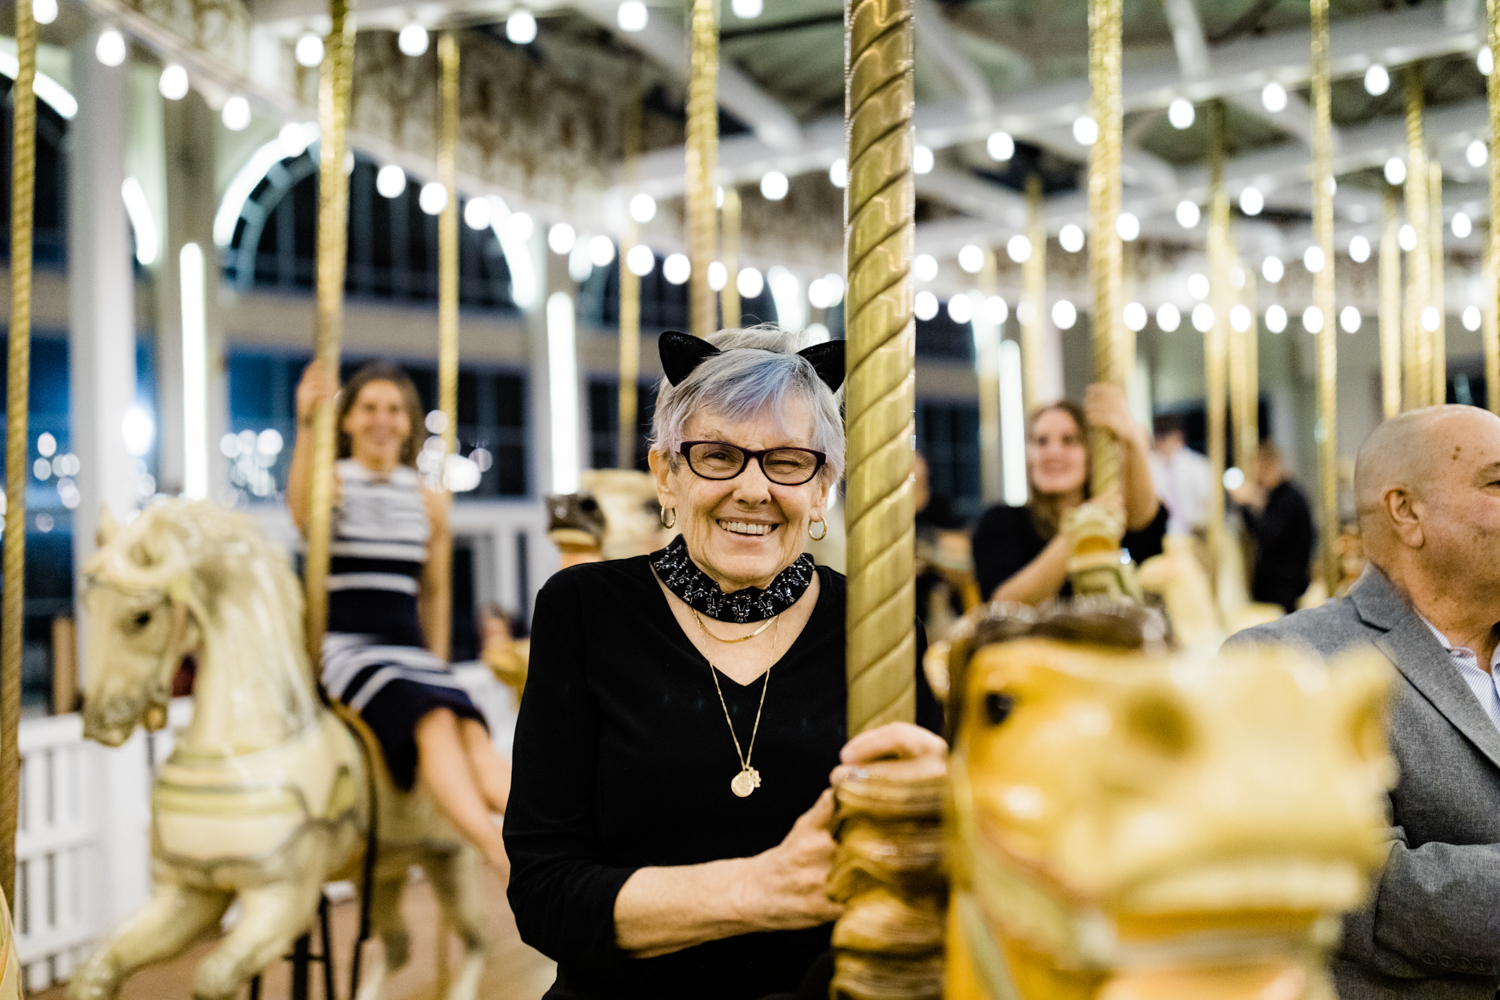 Grandmother smiling on wedding carousel wearing cat ears